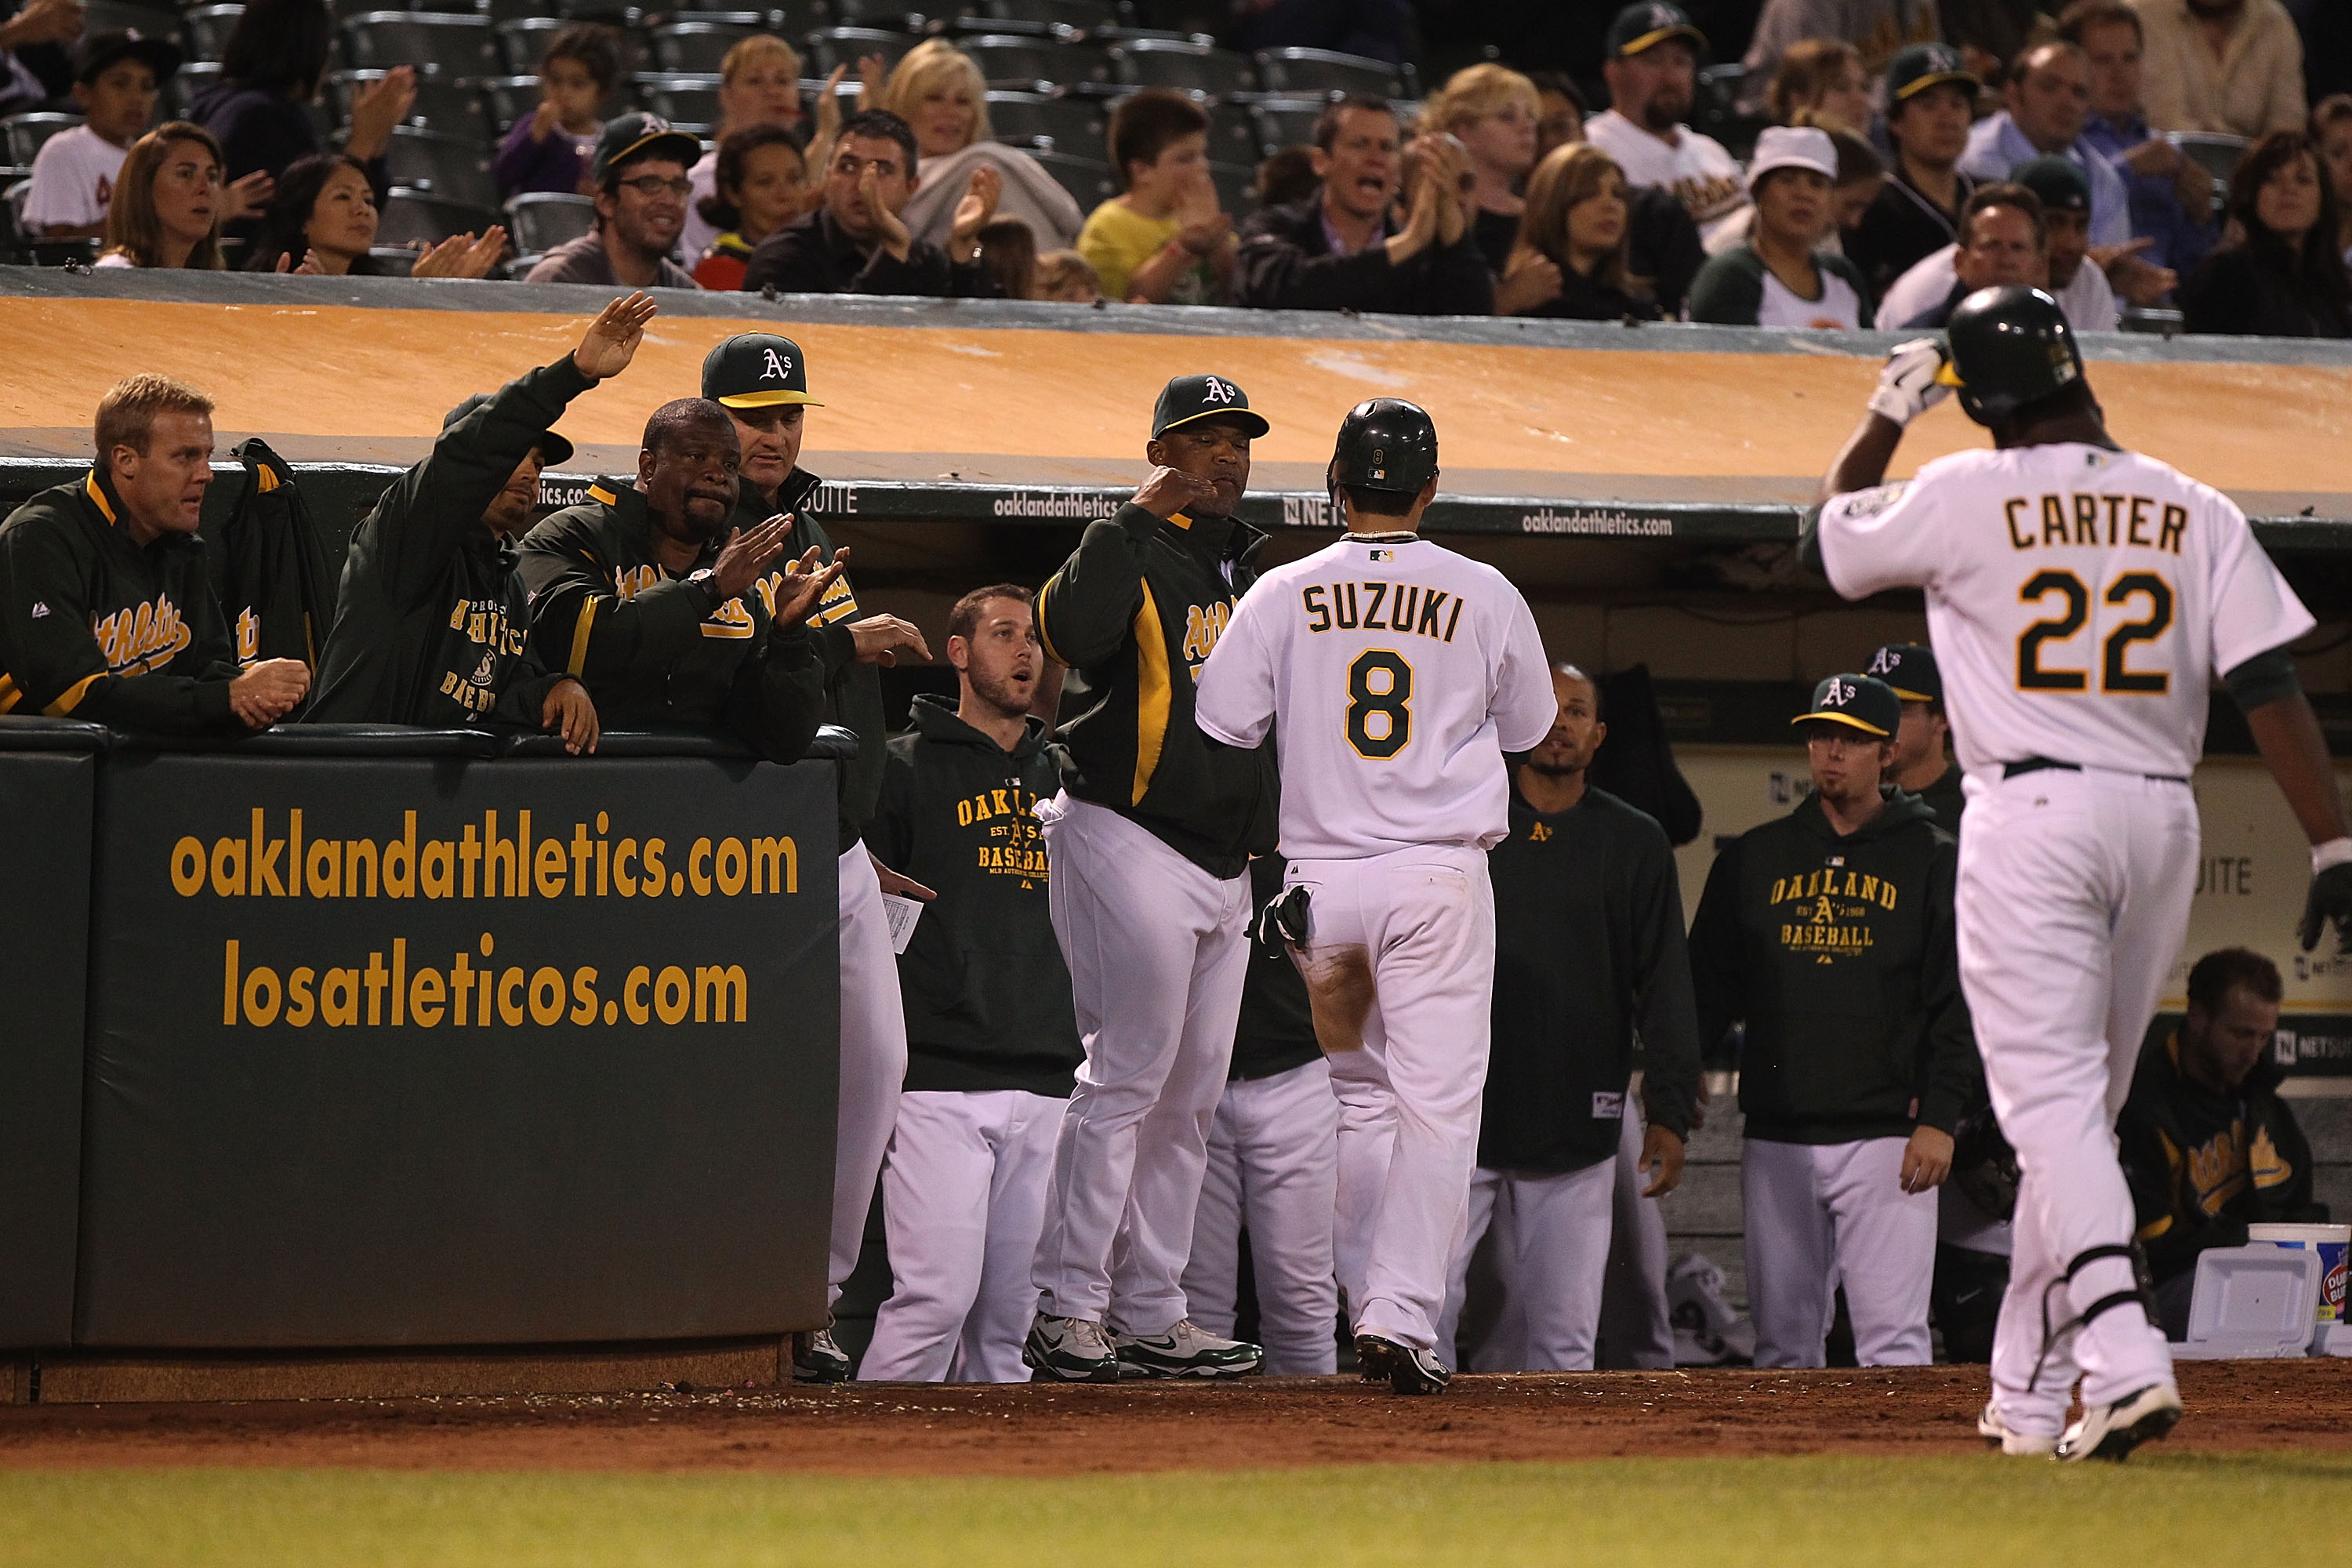 OAKLAND, CA - SEPTEMBER 23:  Chirs Carter #22 of the Oakland Athletics celebrates with Kurt Suzuki #8 after hitting an RBI sacrafice fly against the Texas Rangers in the fourth inning during a Major League Baseball game at the Oakland-Alameda County Colis